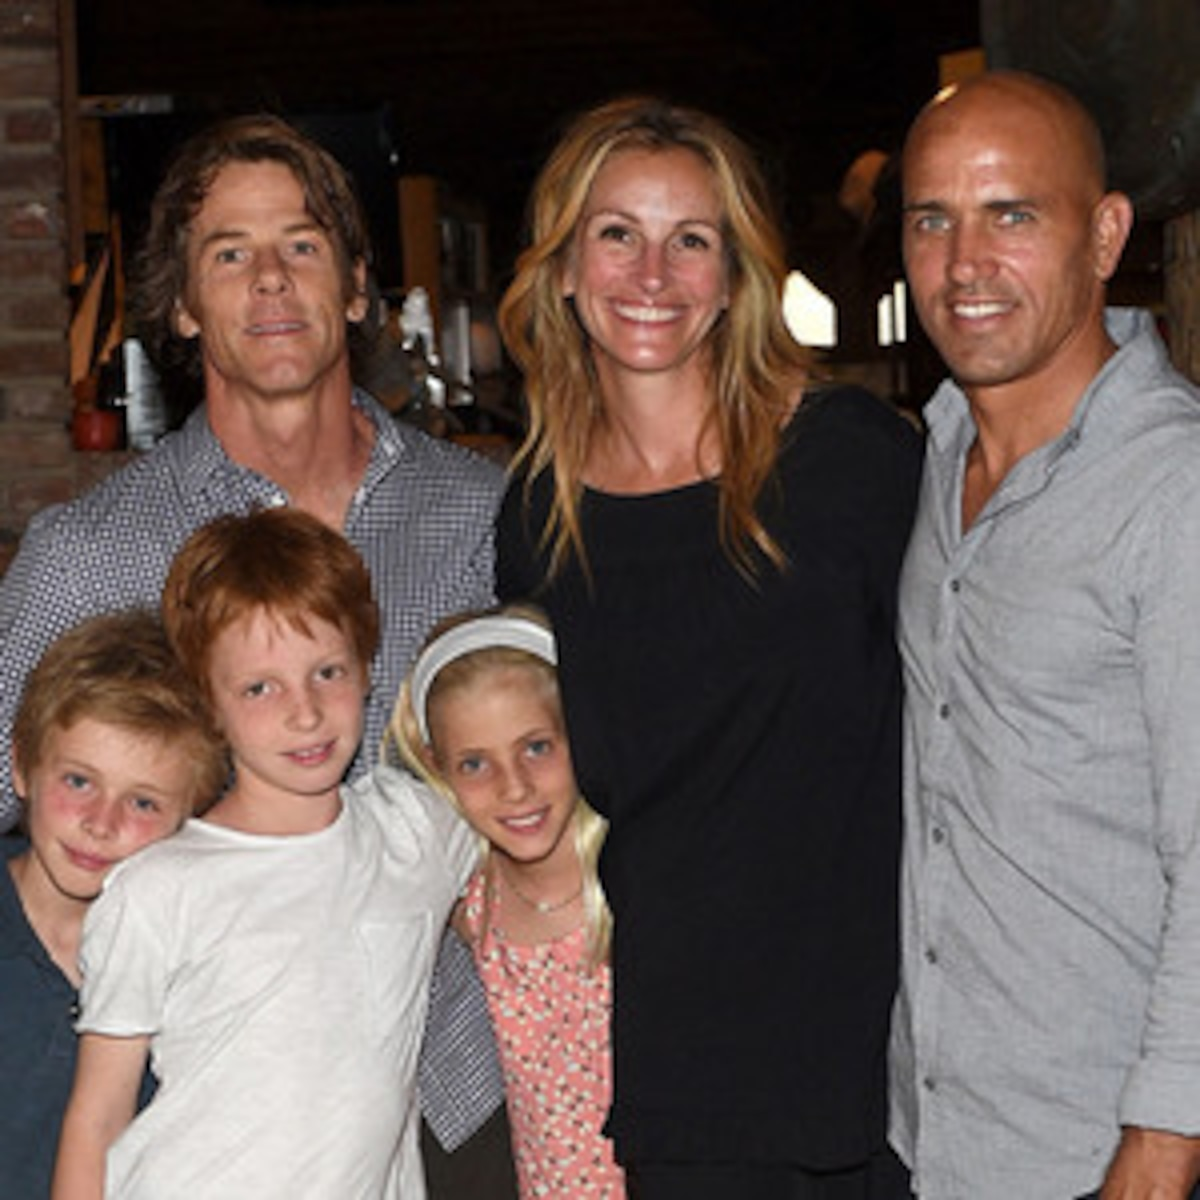 Julia Roberts Kids Are Growing Up Fast During Family Night